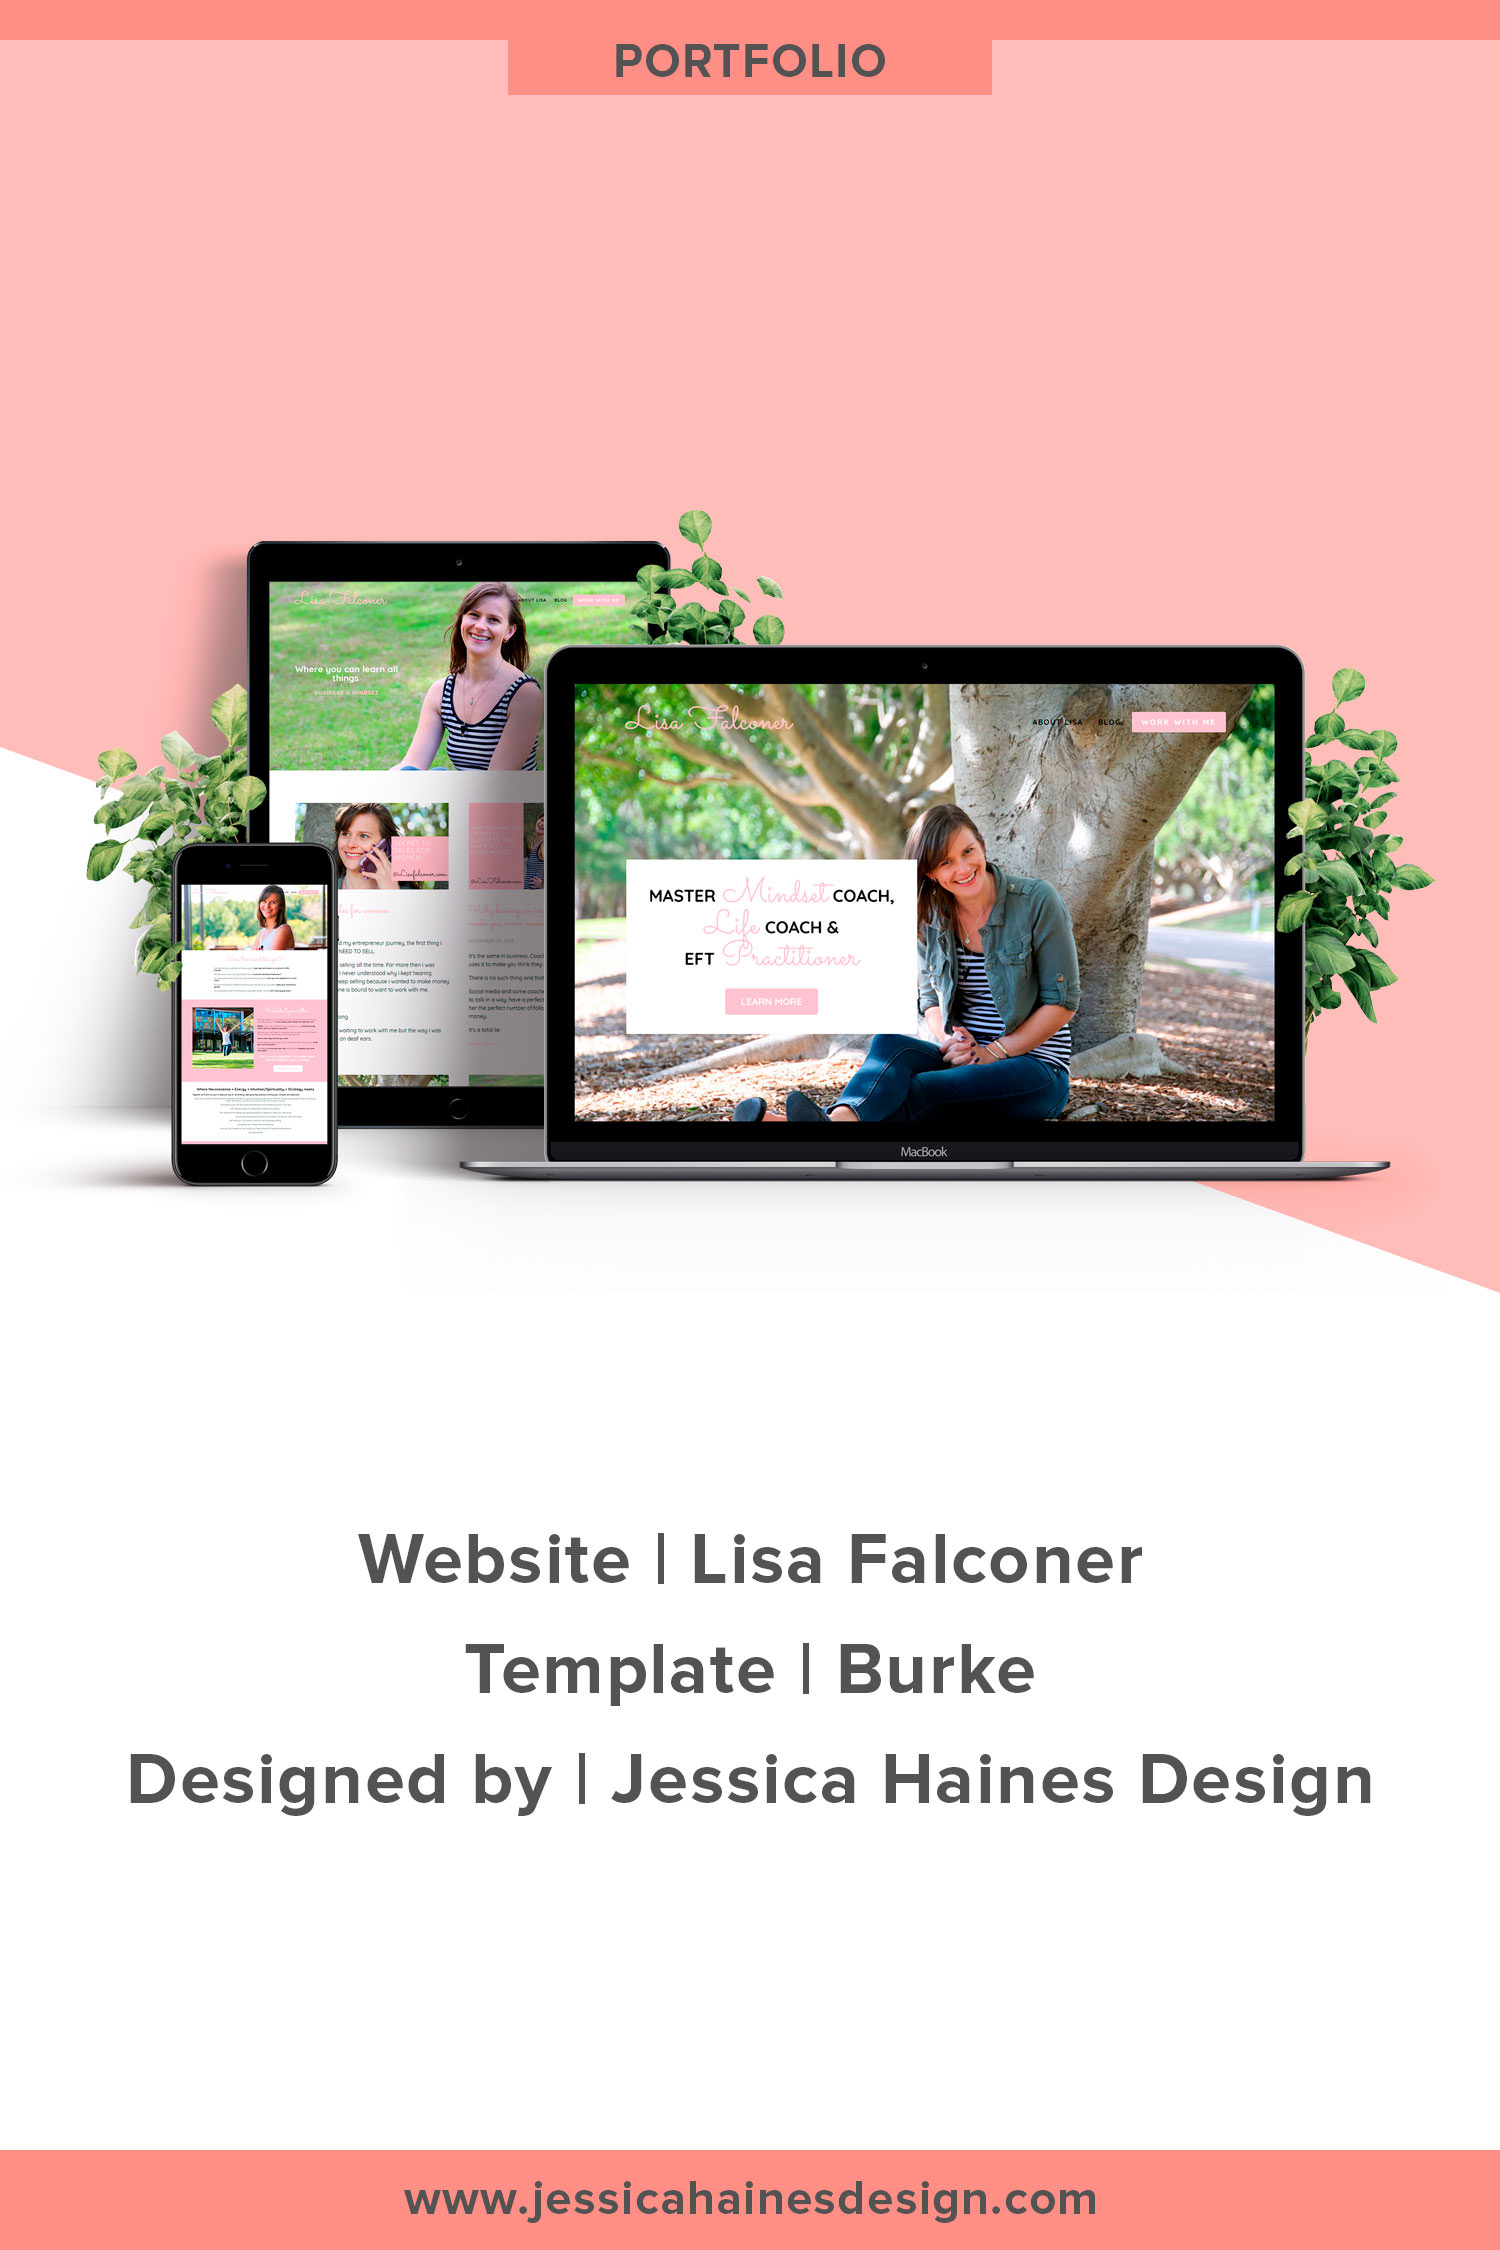 Lisa Falconer website custom designed by Jessica Haines Design. If you are ready to take your business to the next level with a website that looks good and makes you money, click through to see what you new website could look like! | www.jessicahainesdesign.com